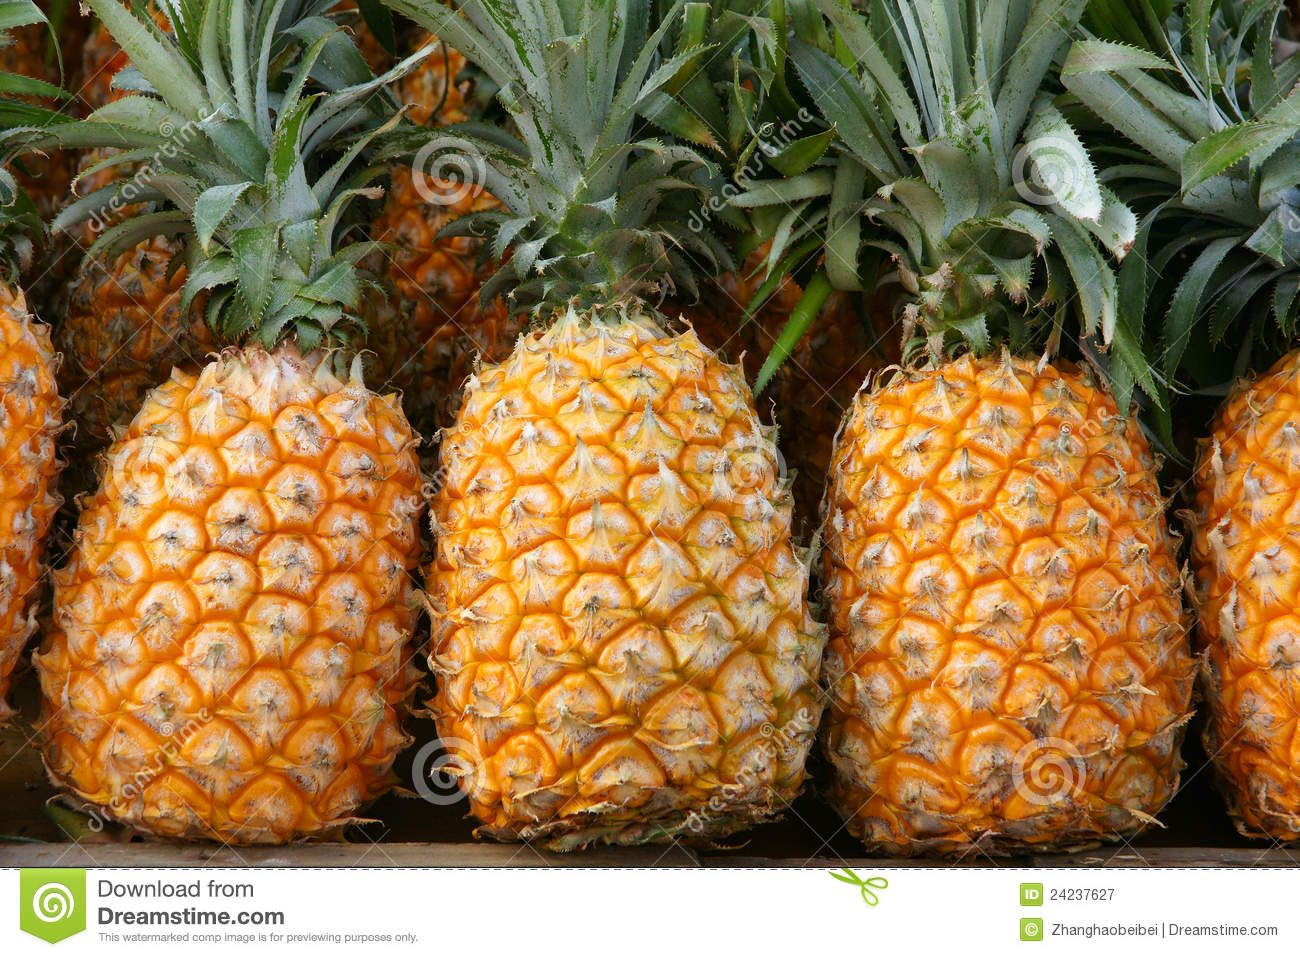 Pineapples Royalty Free Stock Photography - Image: 24237627